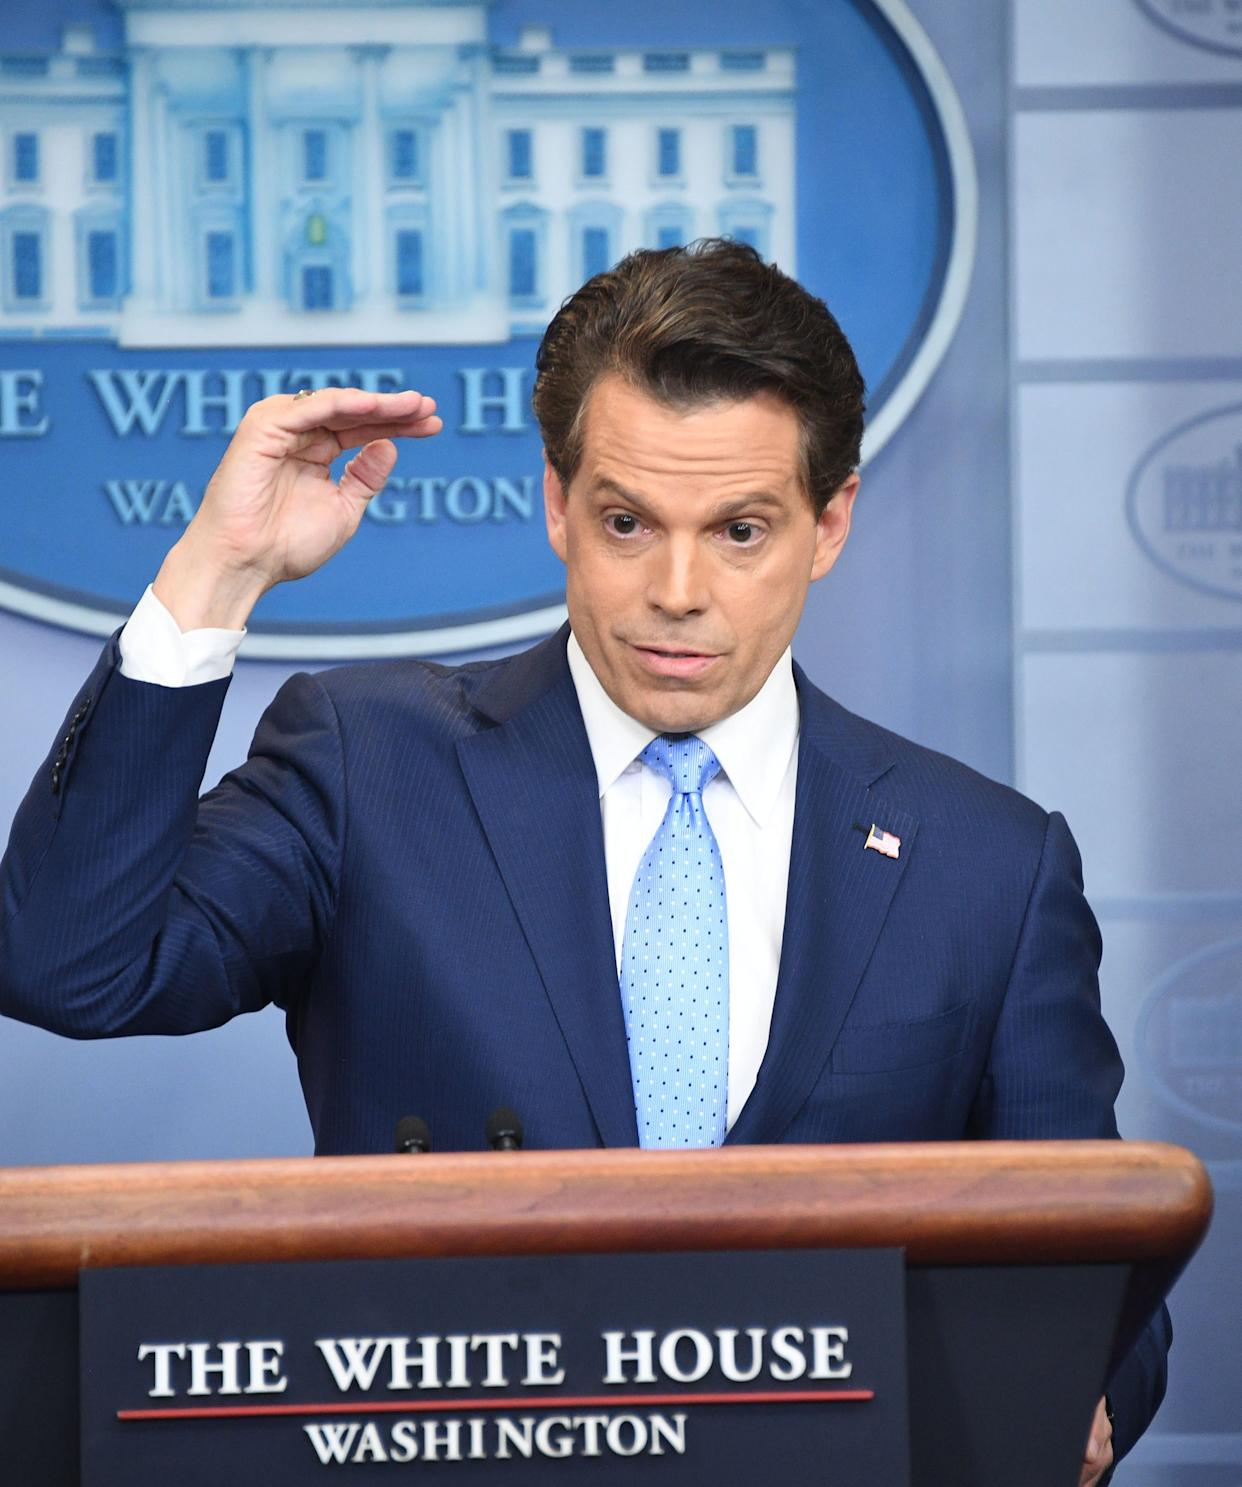 Scaramucci talks to the media during a briefing on July 21, 2017.